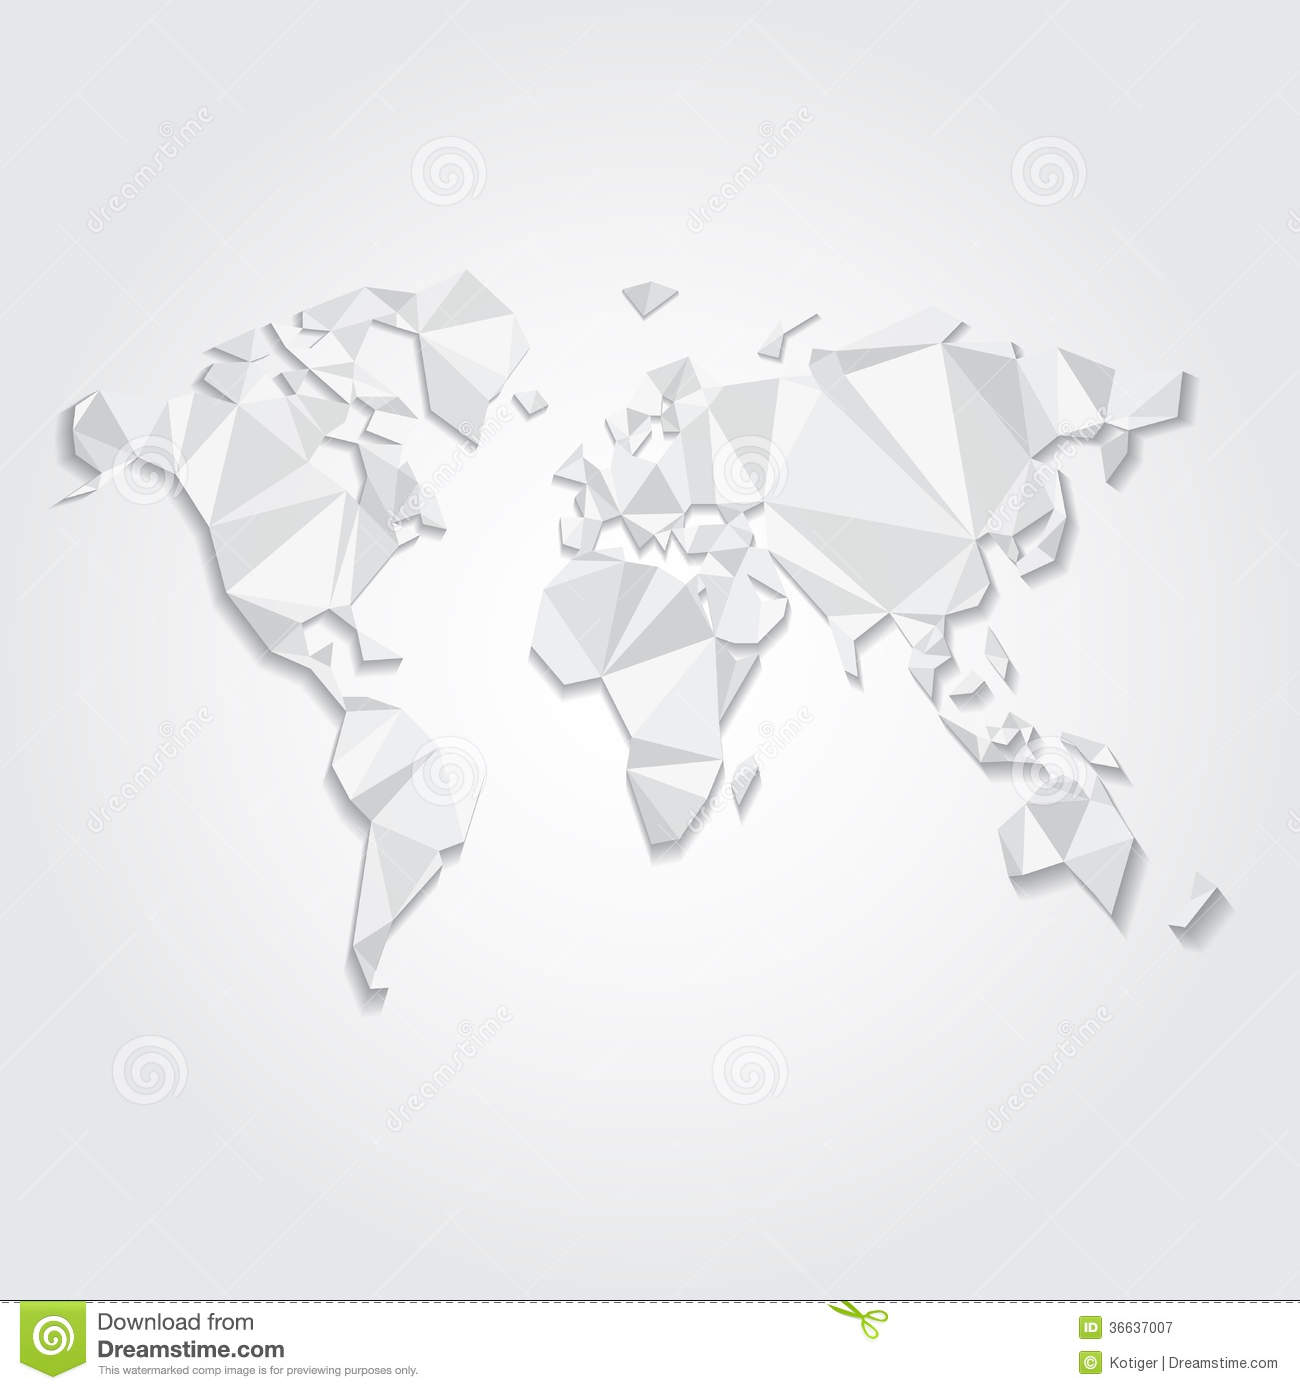 Triangular world map vector file stock vector illustration of download comp gumiabroncs Choice Image